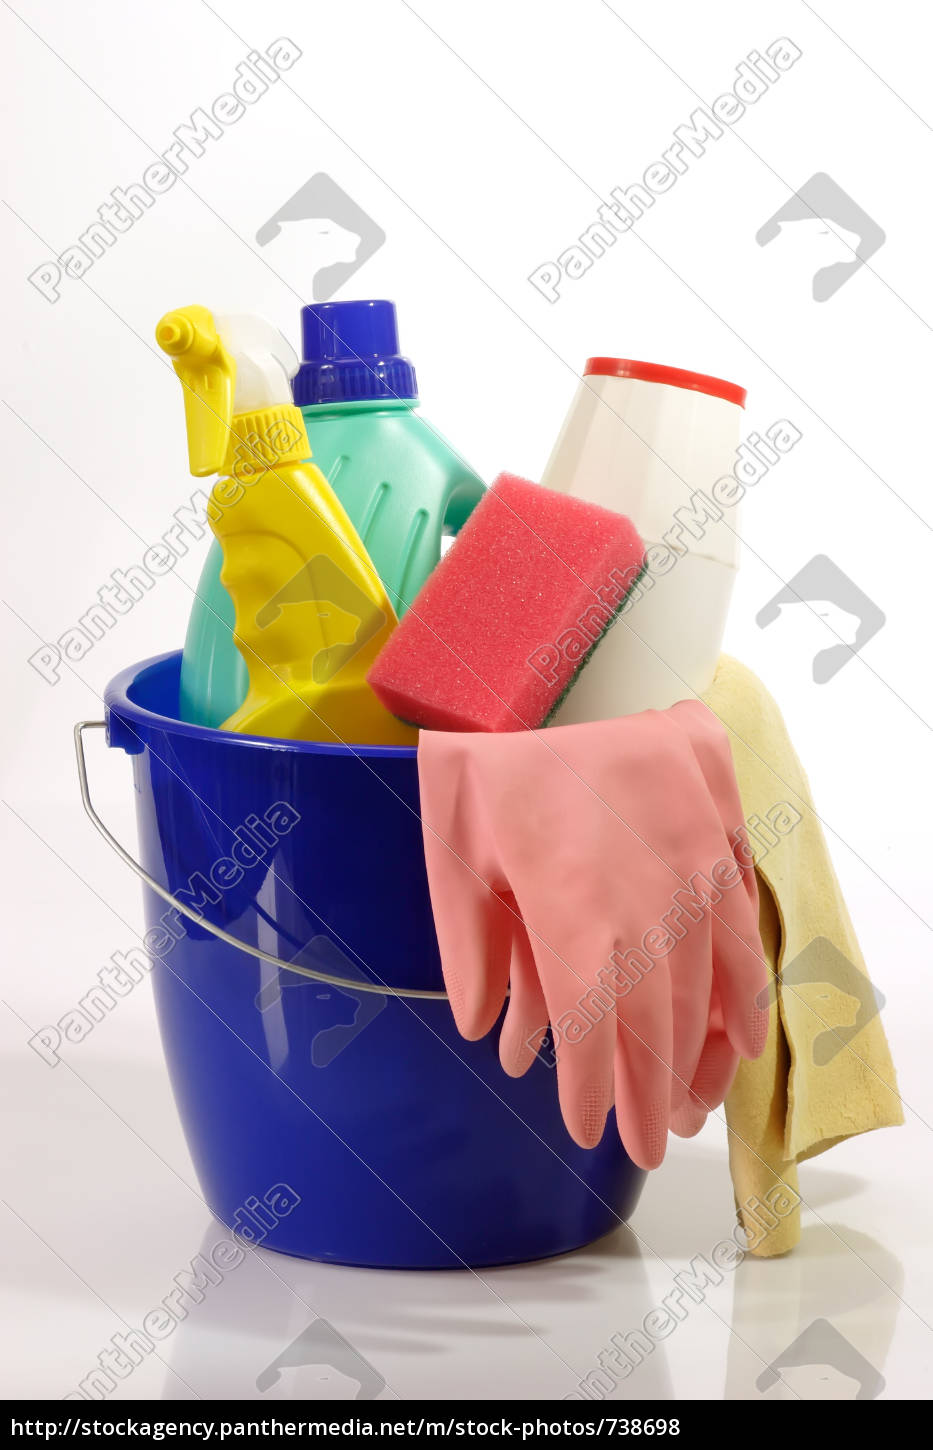 cleaning, inventory - 738698